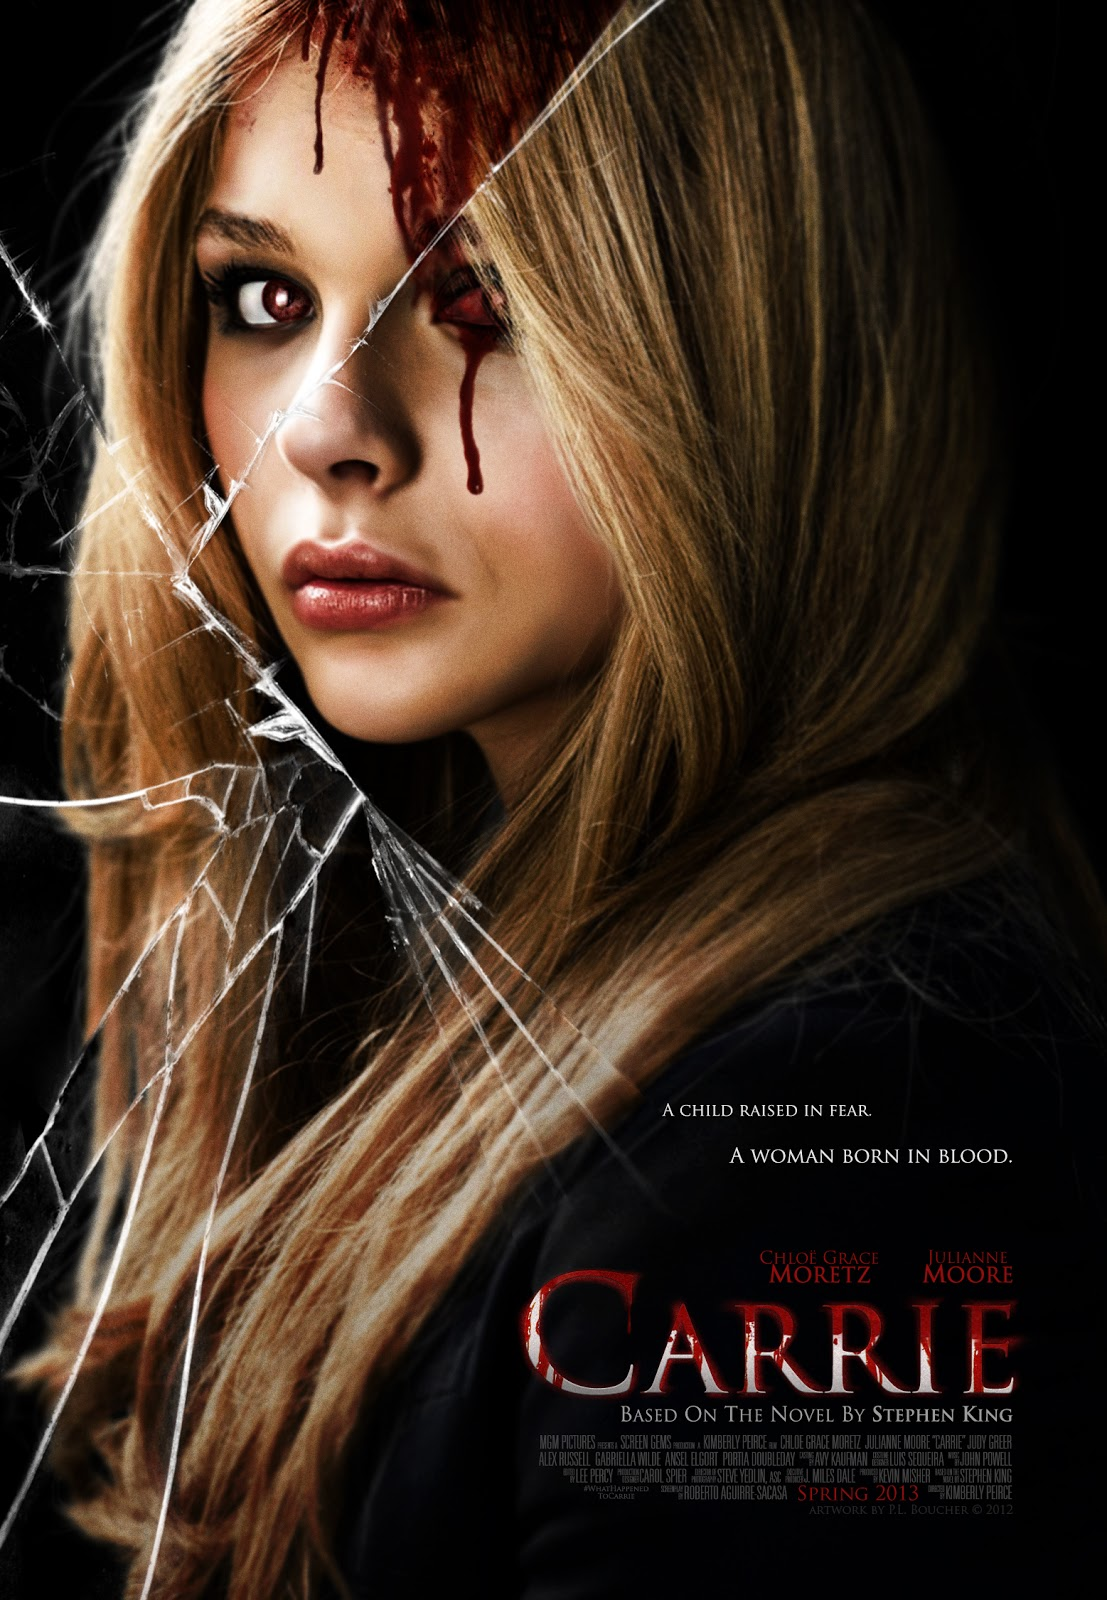 carrie movie Watch online carrie hd carrie full movie streaming, carrie 2013 online with english subtitles free movies hd full movie with eng subtitles en hd gratis besplatno hd online with english subtitles europixnet free streaming with subtitles free movies hd europixnet film online with subs eng.